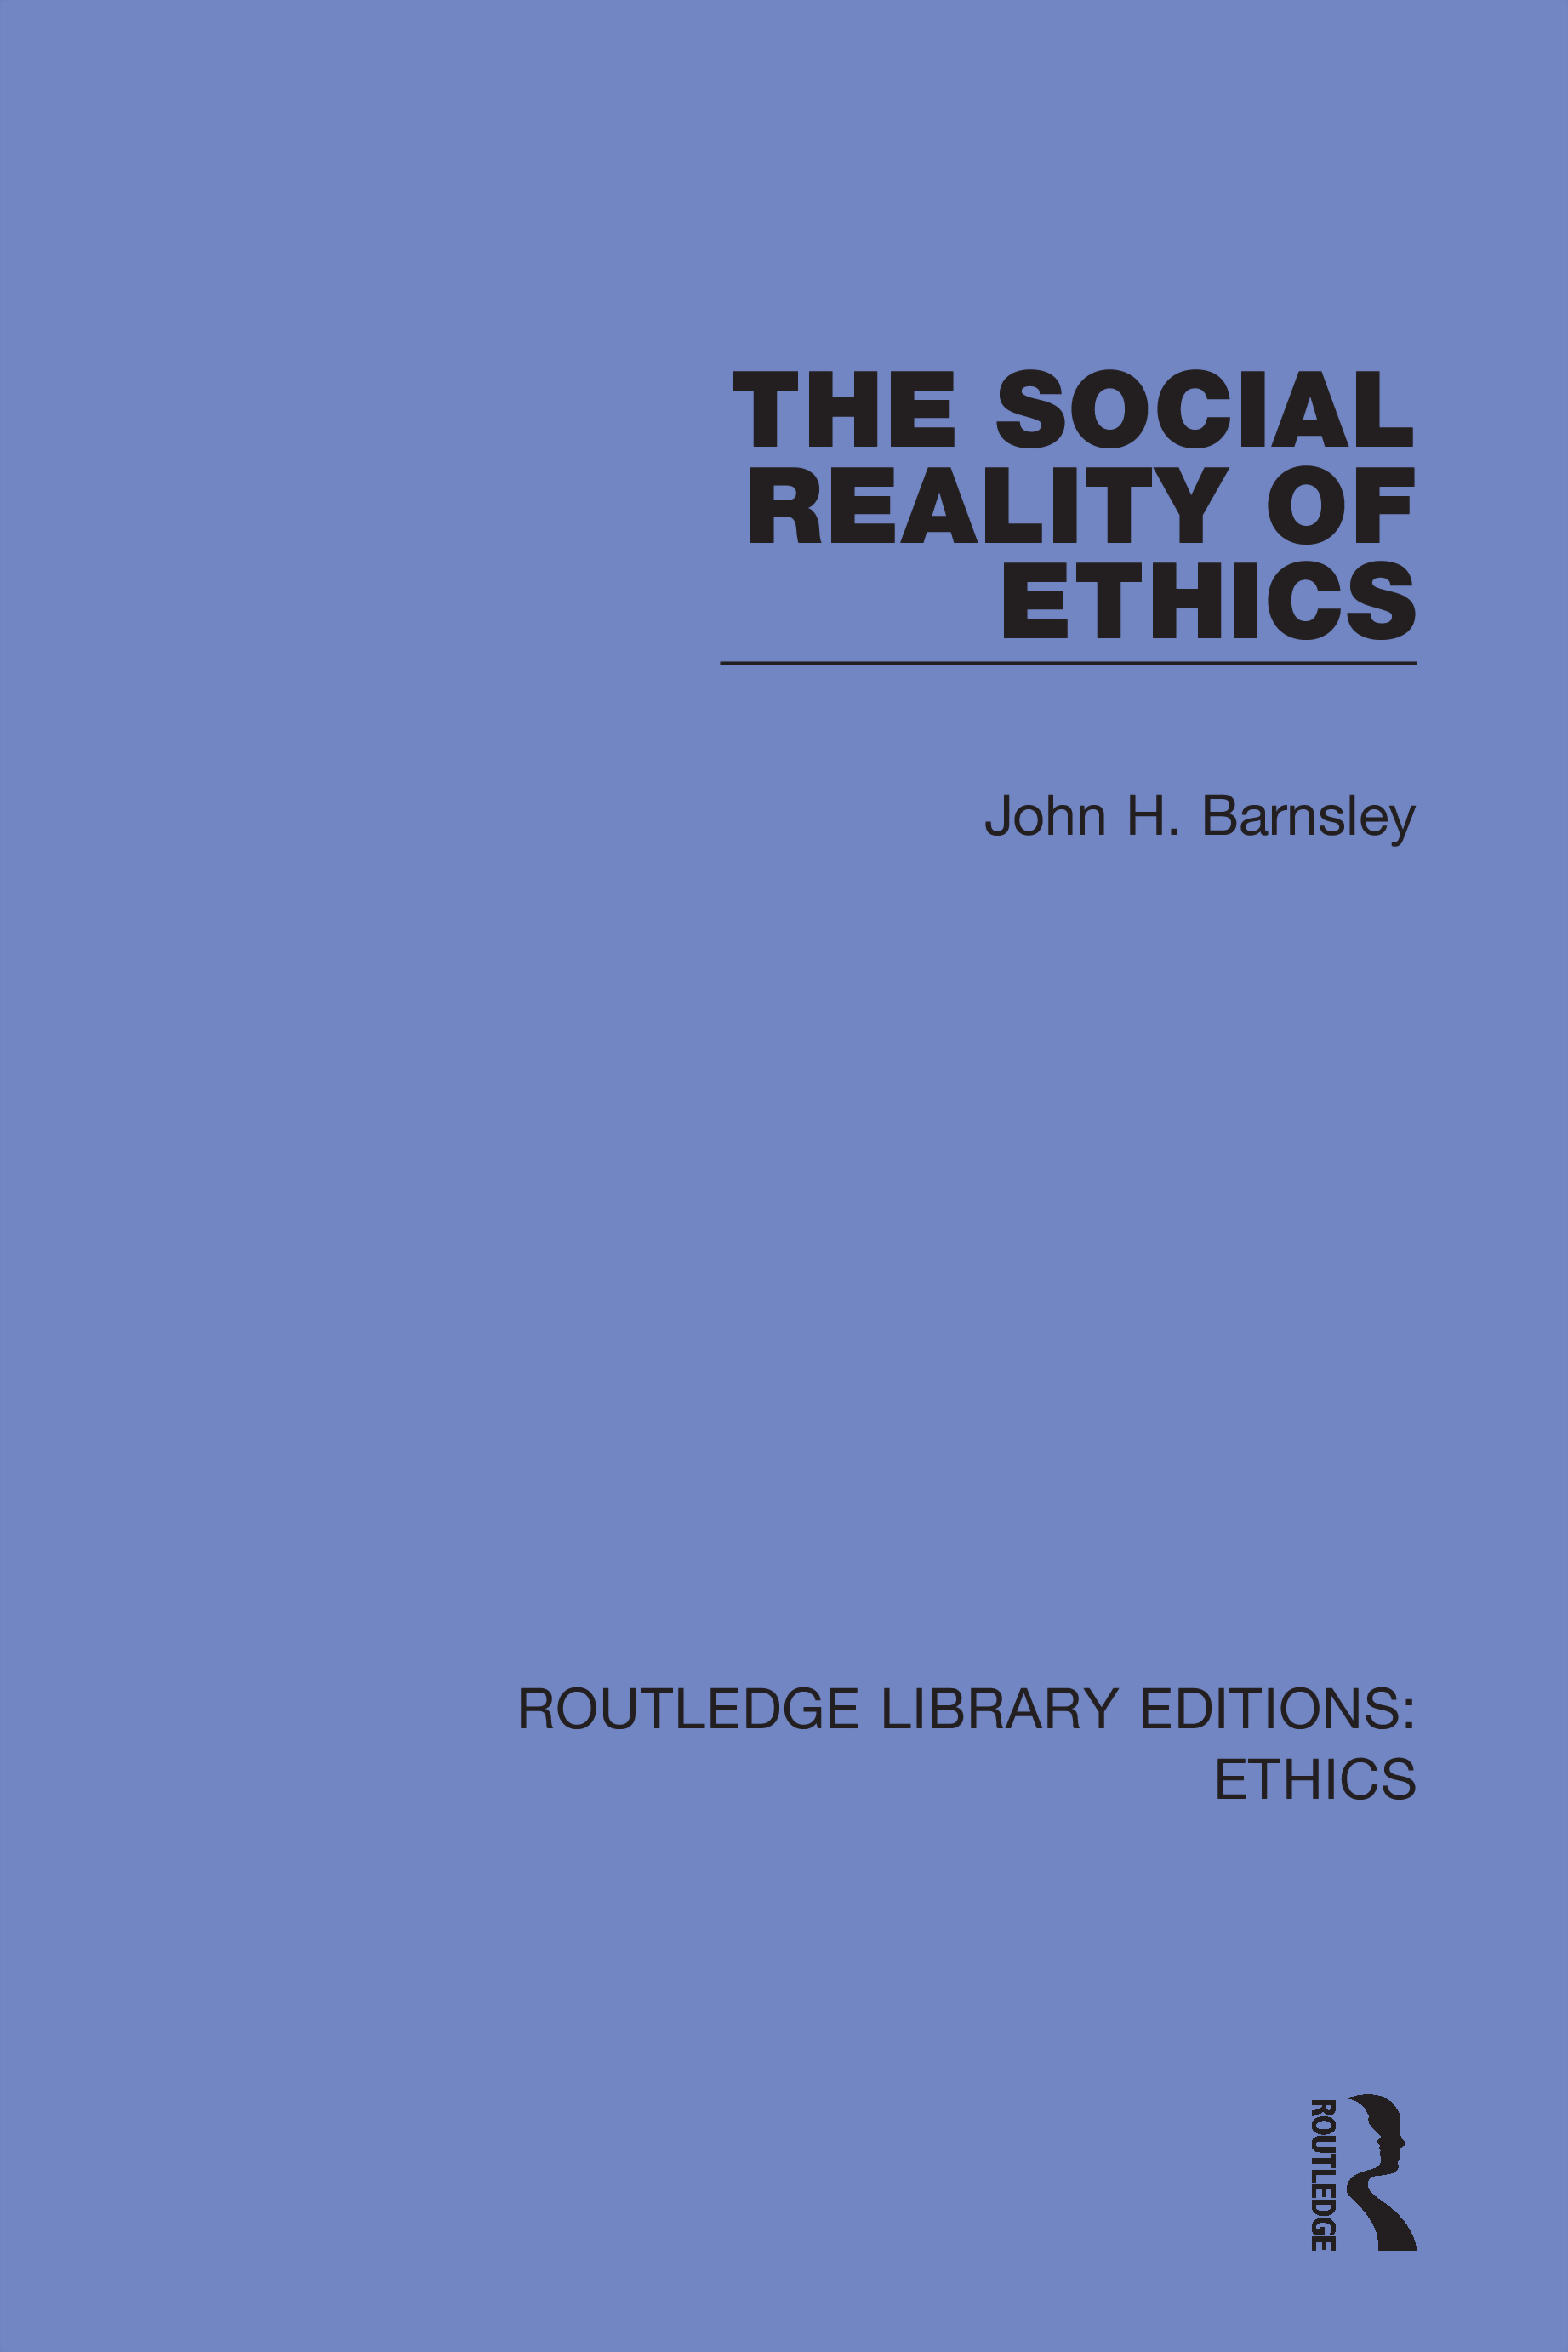 The Social Reality of Ethics